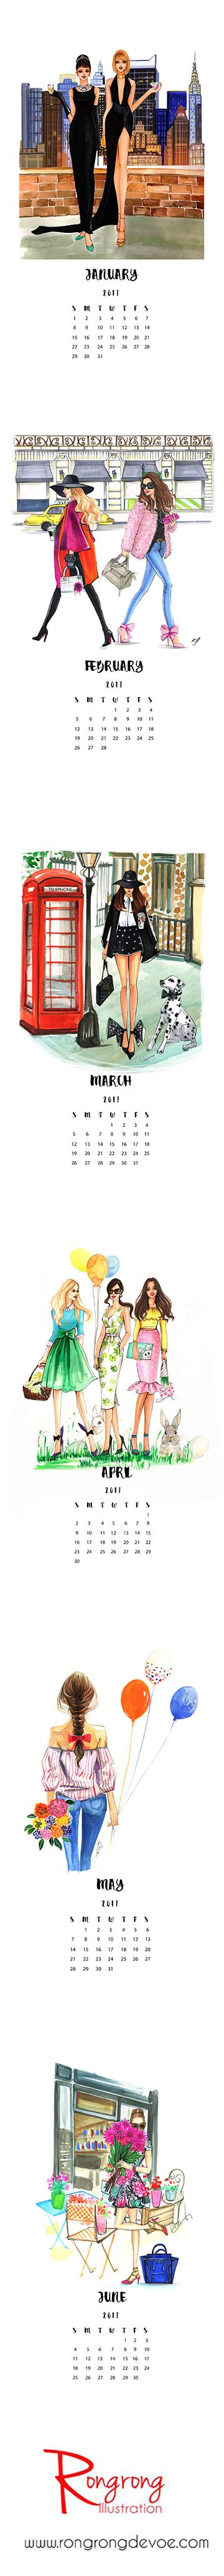 Tops fashion design sketches flat fashion sketch top 045 - Illustrated Fashion Calendar By Houston Fashion Illustrator Rongrong Devoe Hand Illustrated And Made In Usa